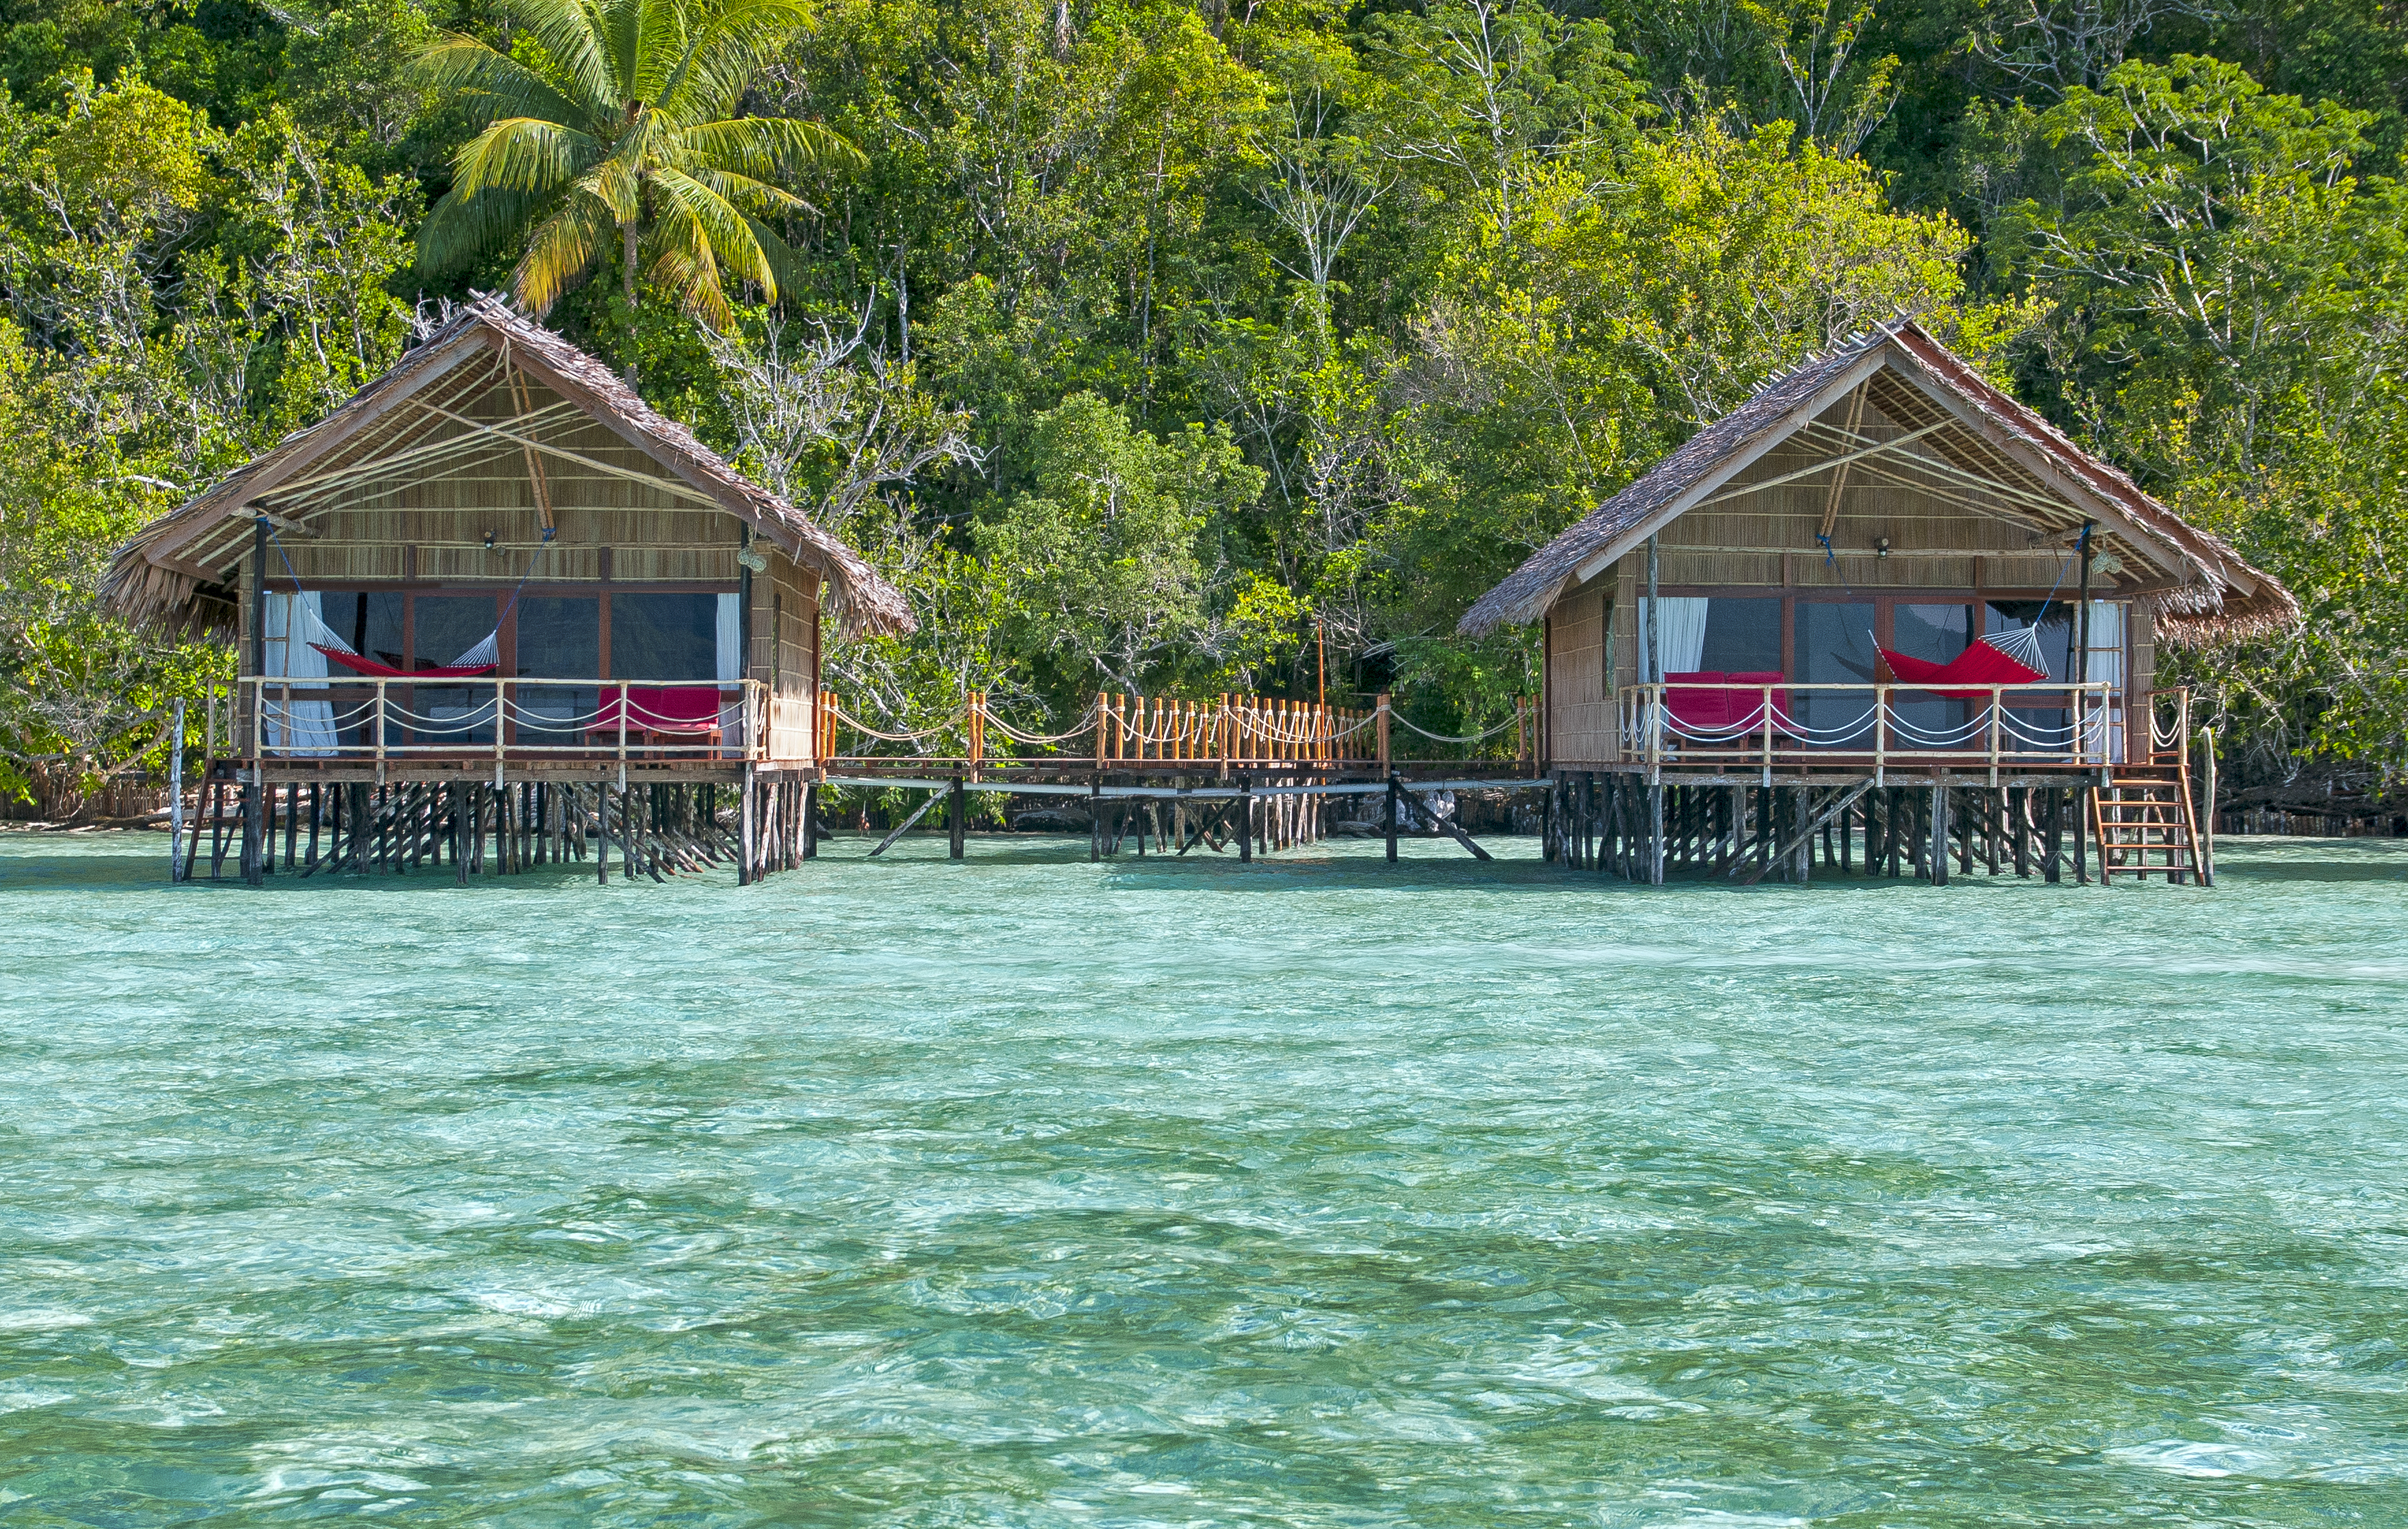 deluxe water bungalows seen from the front